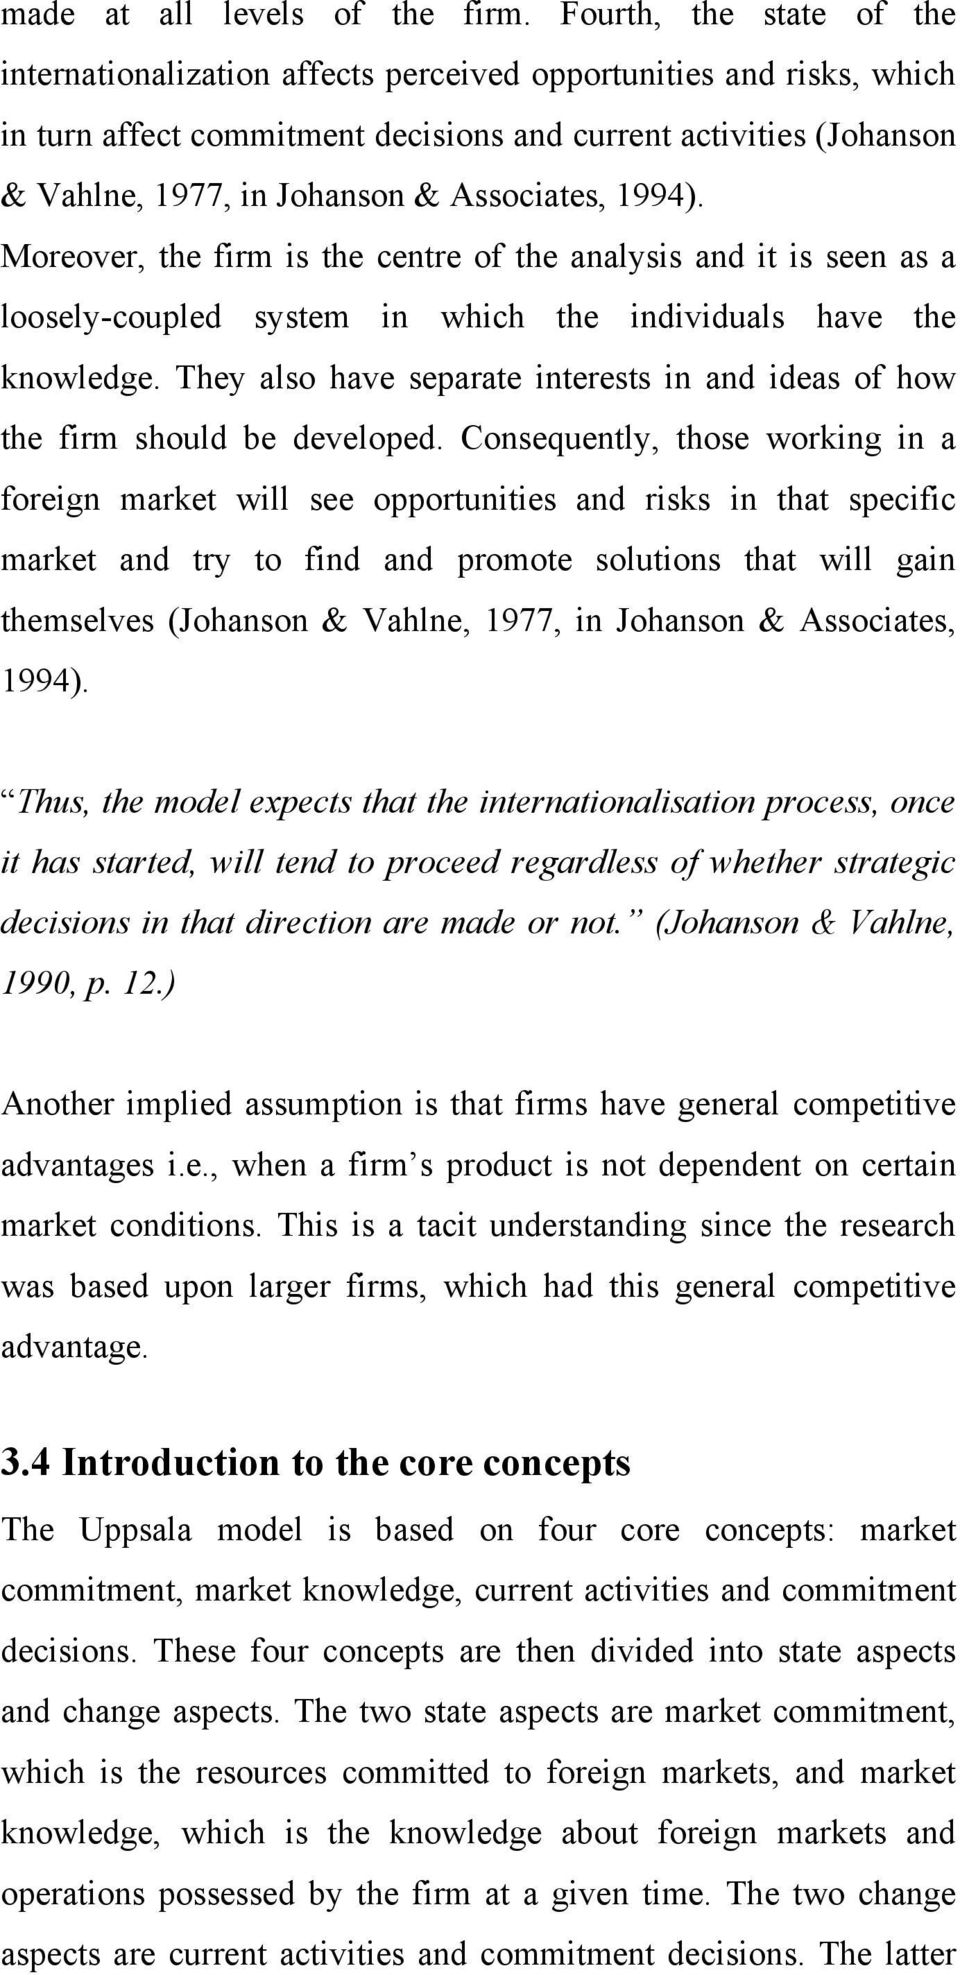 Associates, 1994). Moreover, the firm is the centre of the analysis and it is seen as a loosely-coupled system in which the individuals have the knowledge.